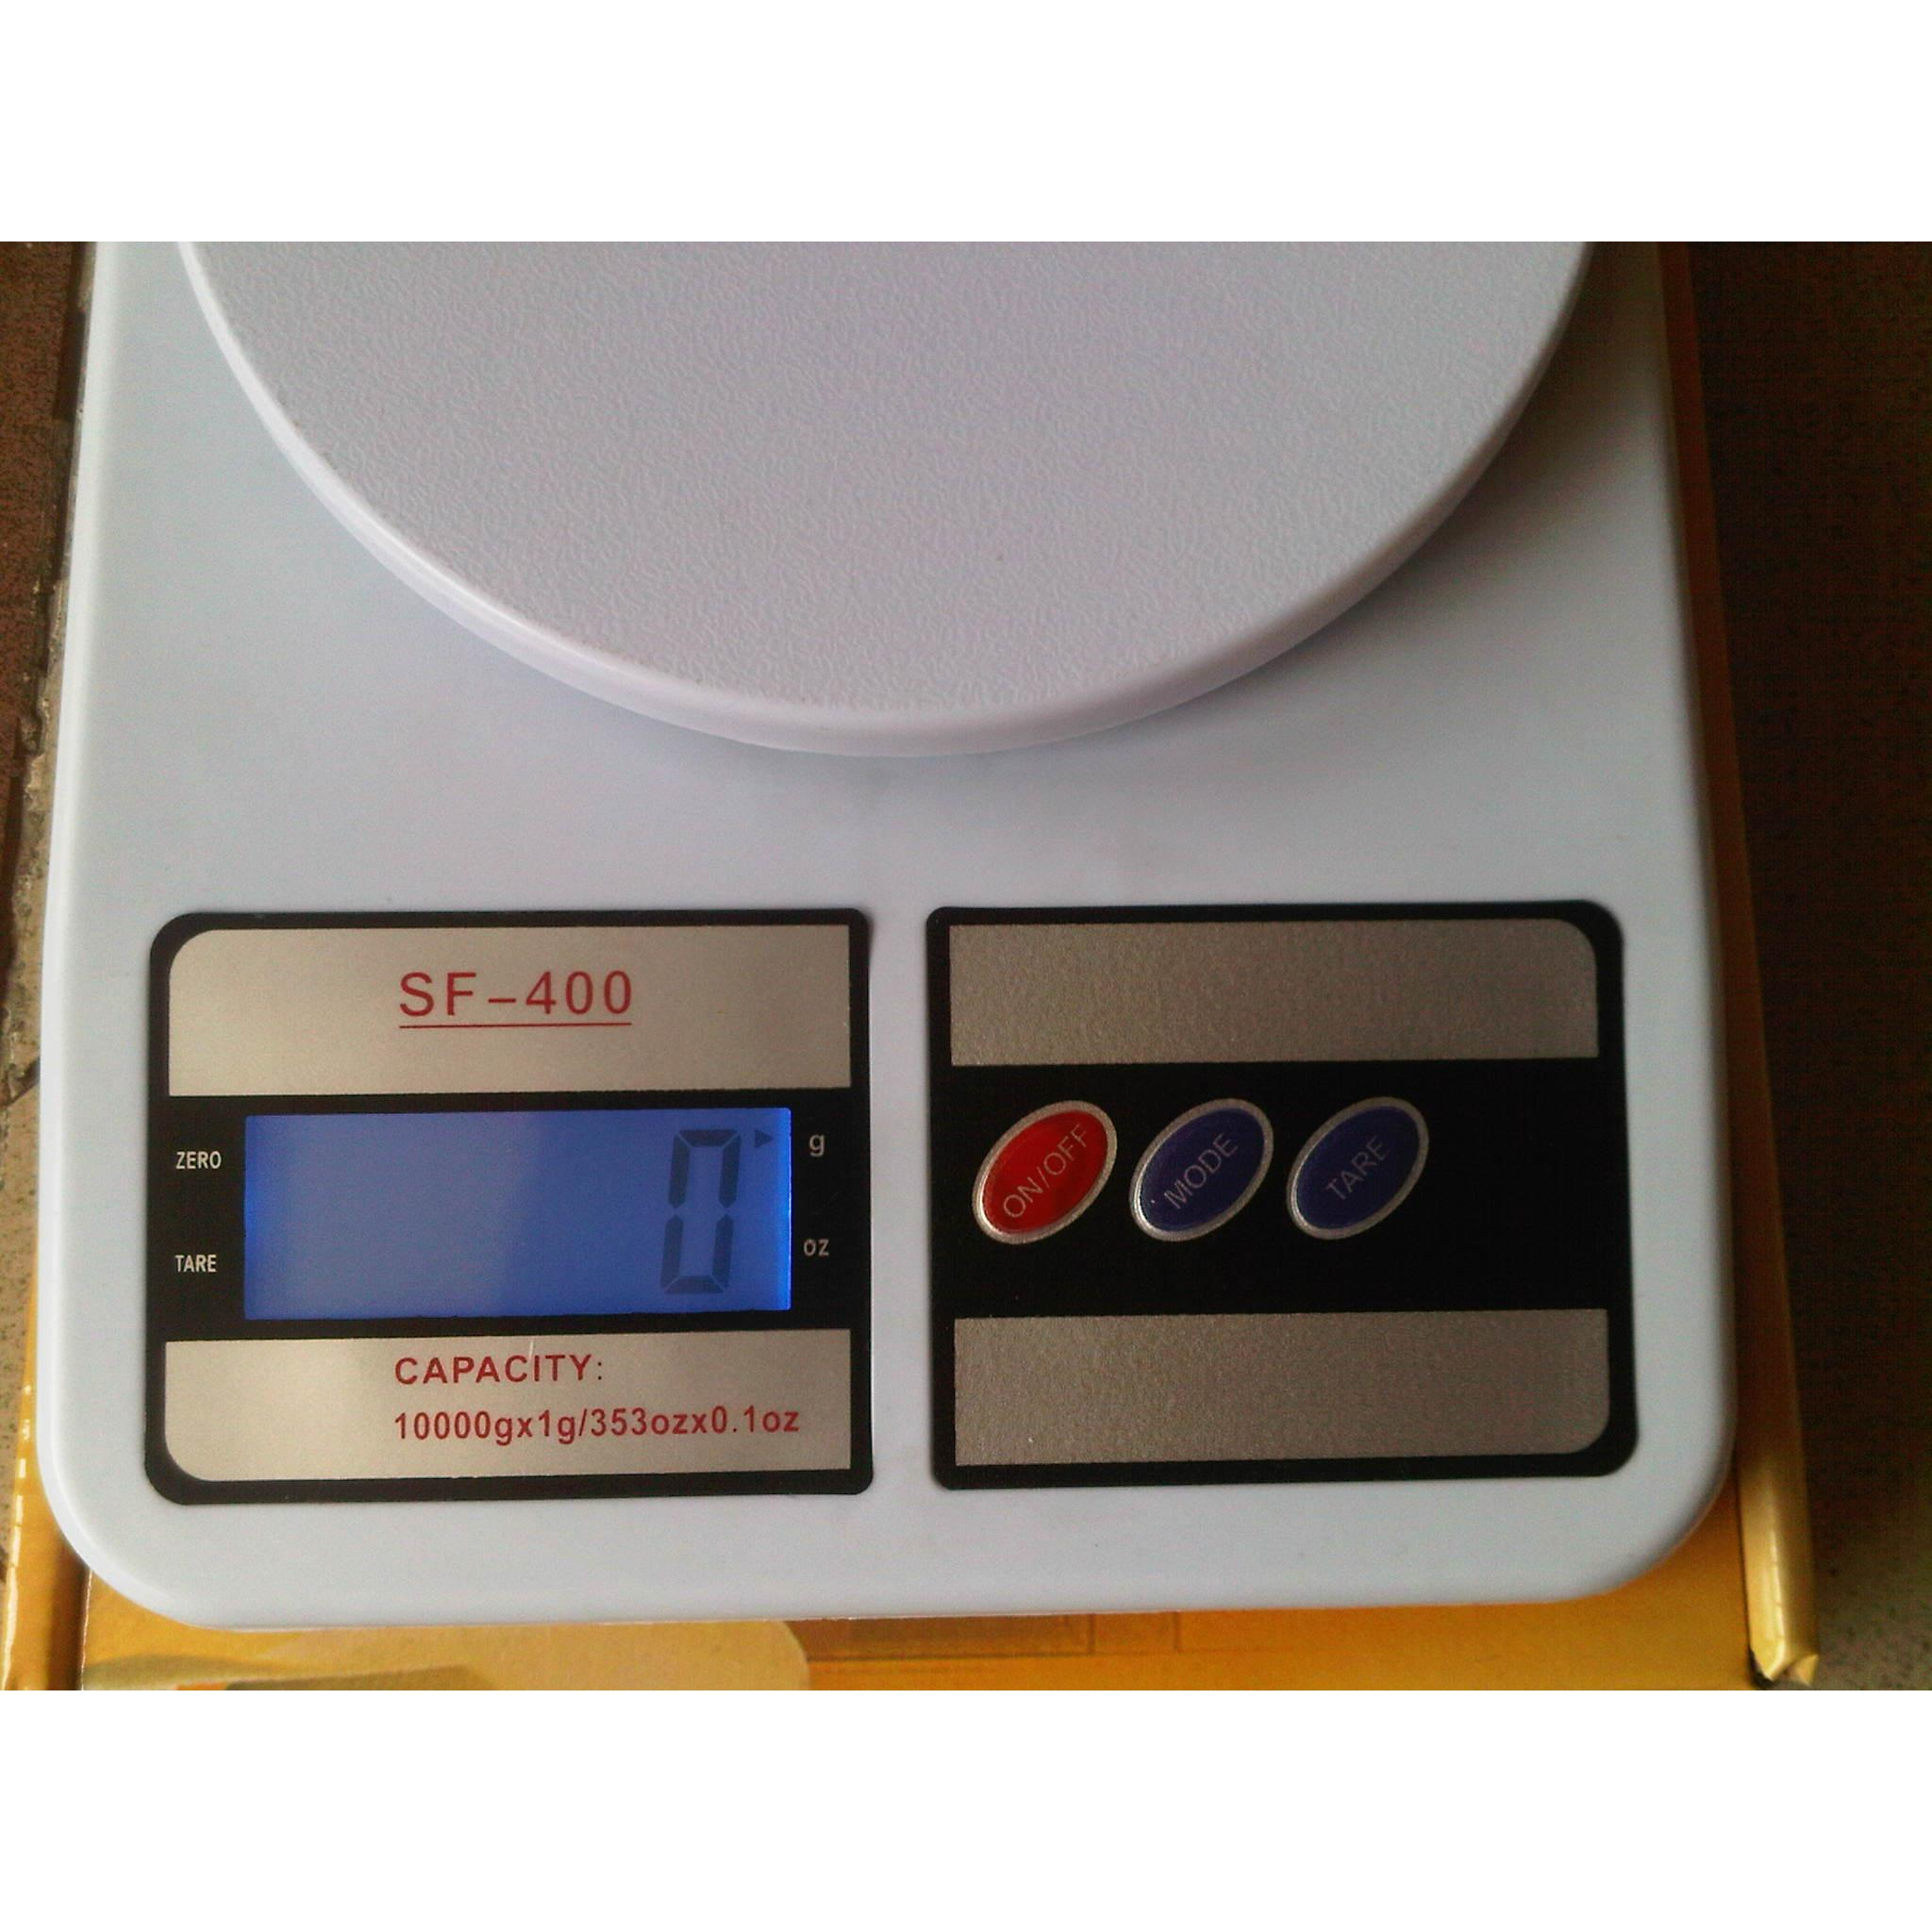 Timbangan Digital Dapur Led 10 Kg Elevenia 10kg Sf